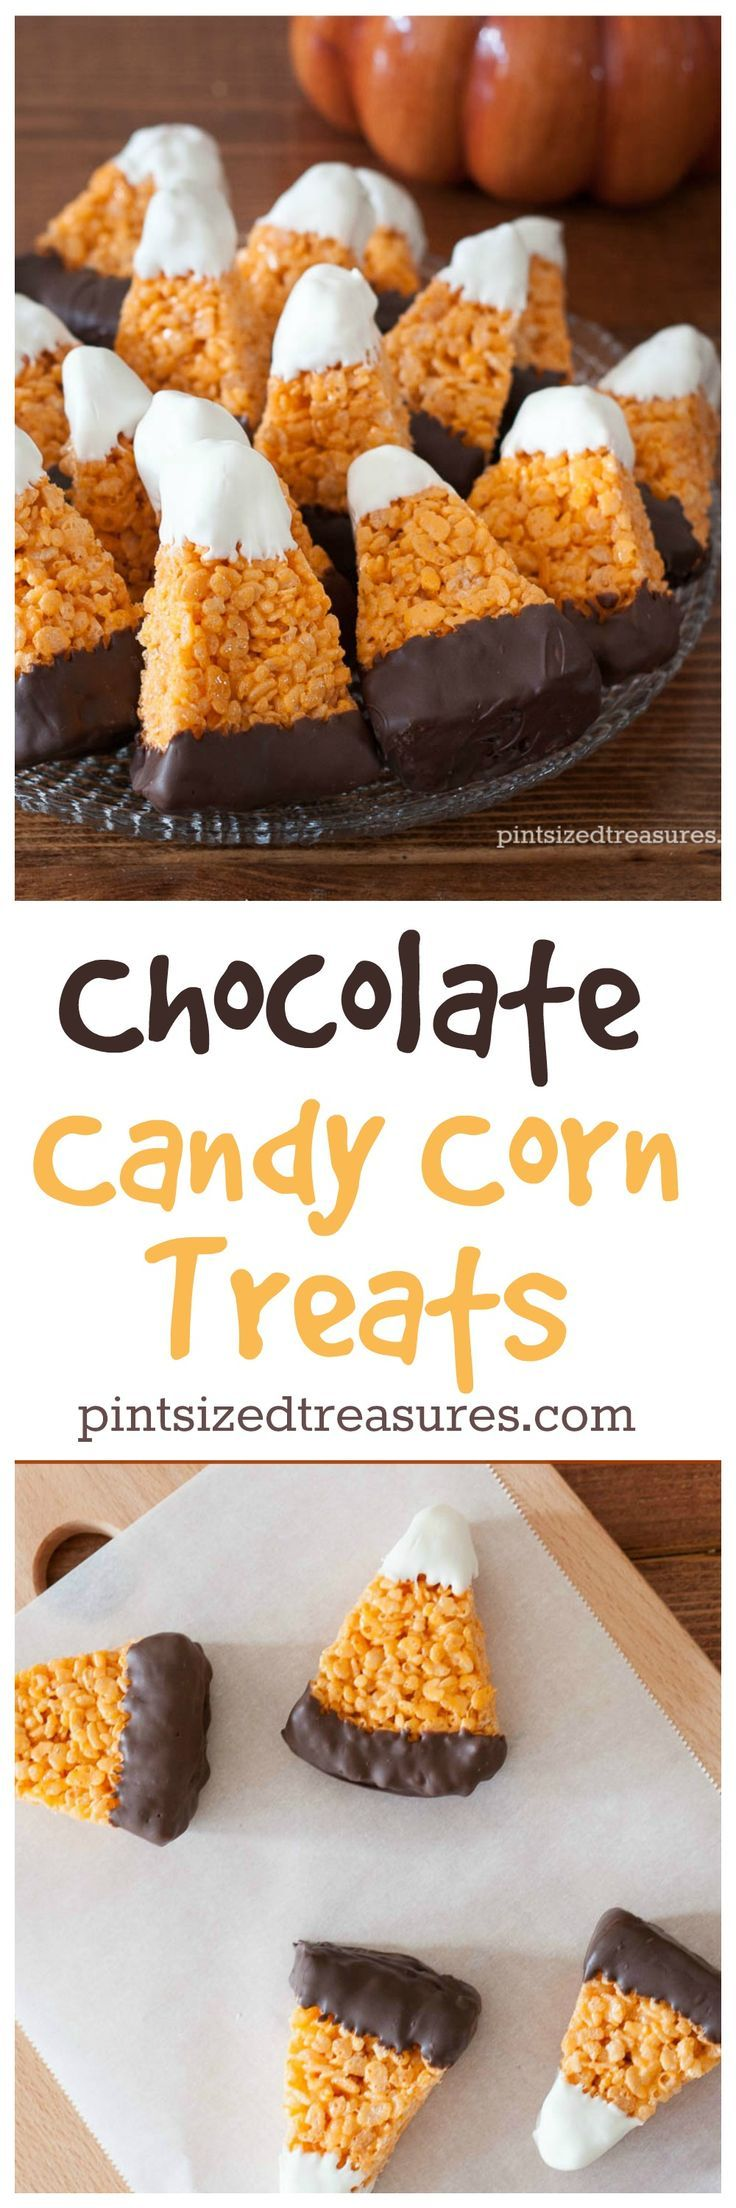 Chocolate Candy Corn Crispy Treats are super-cute and easy to make! Not to mention